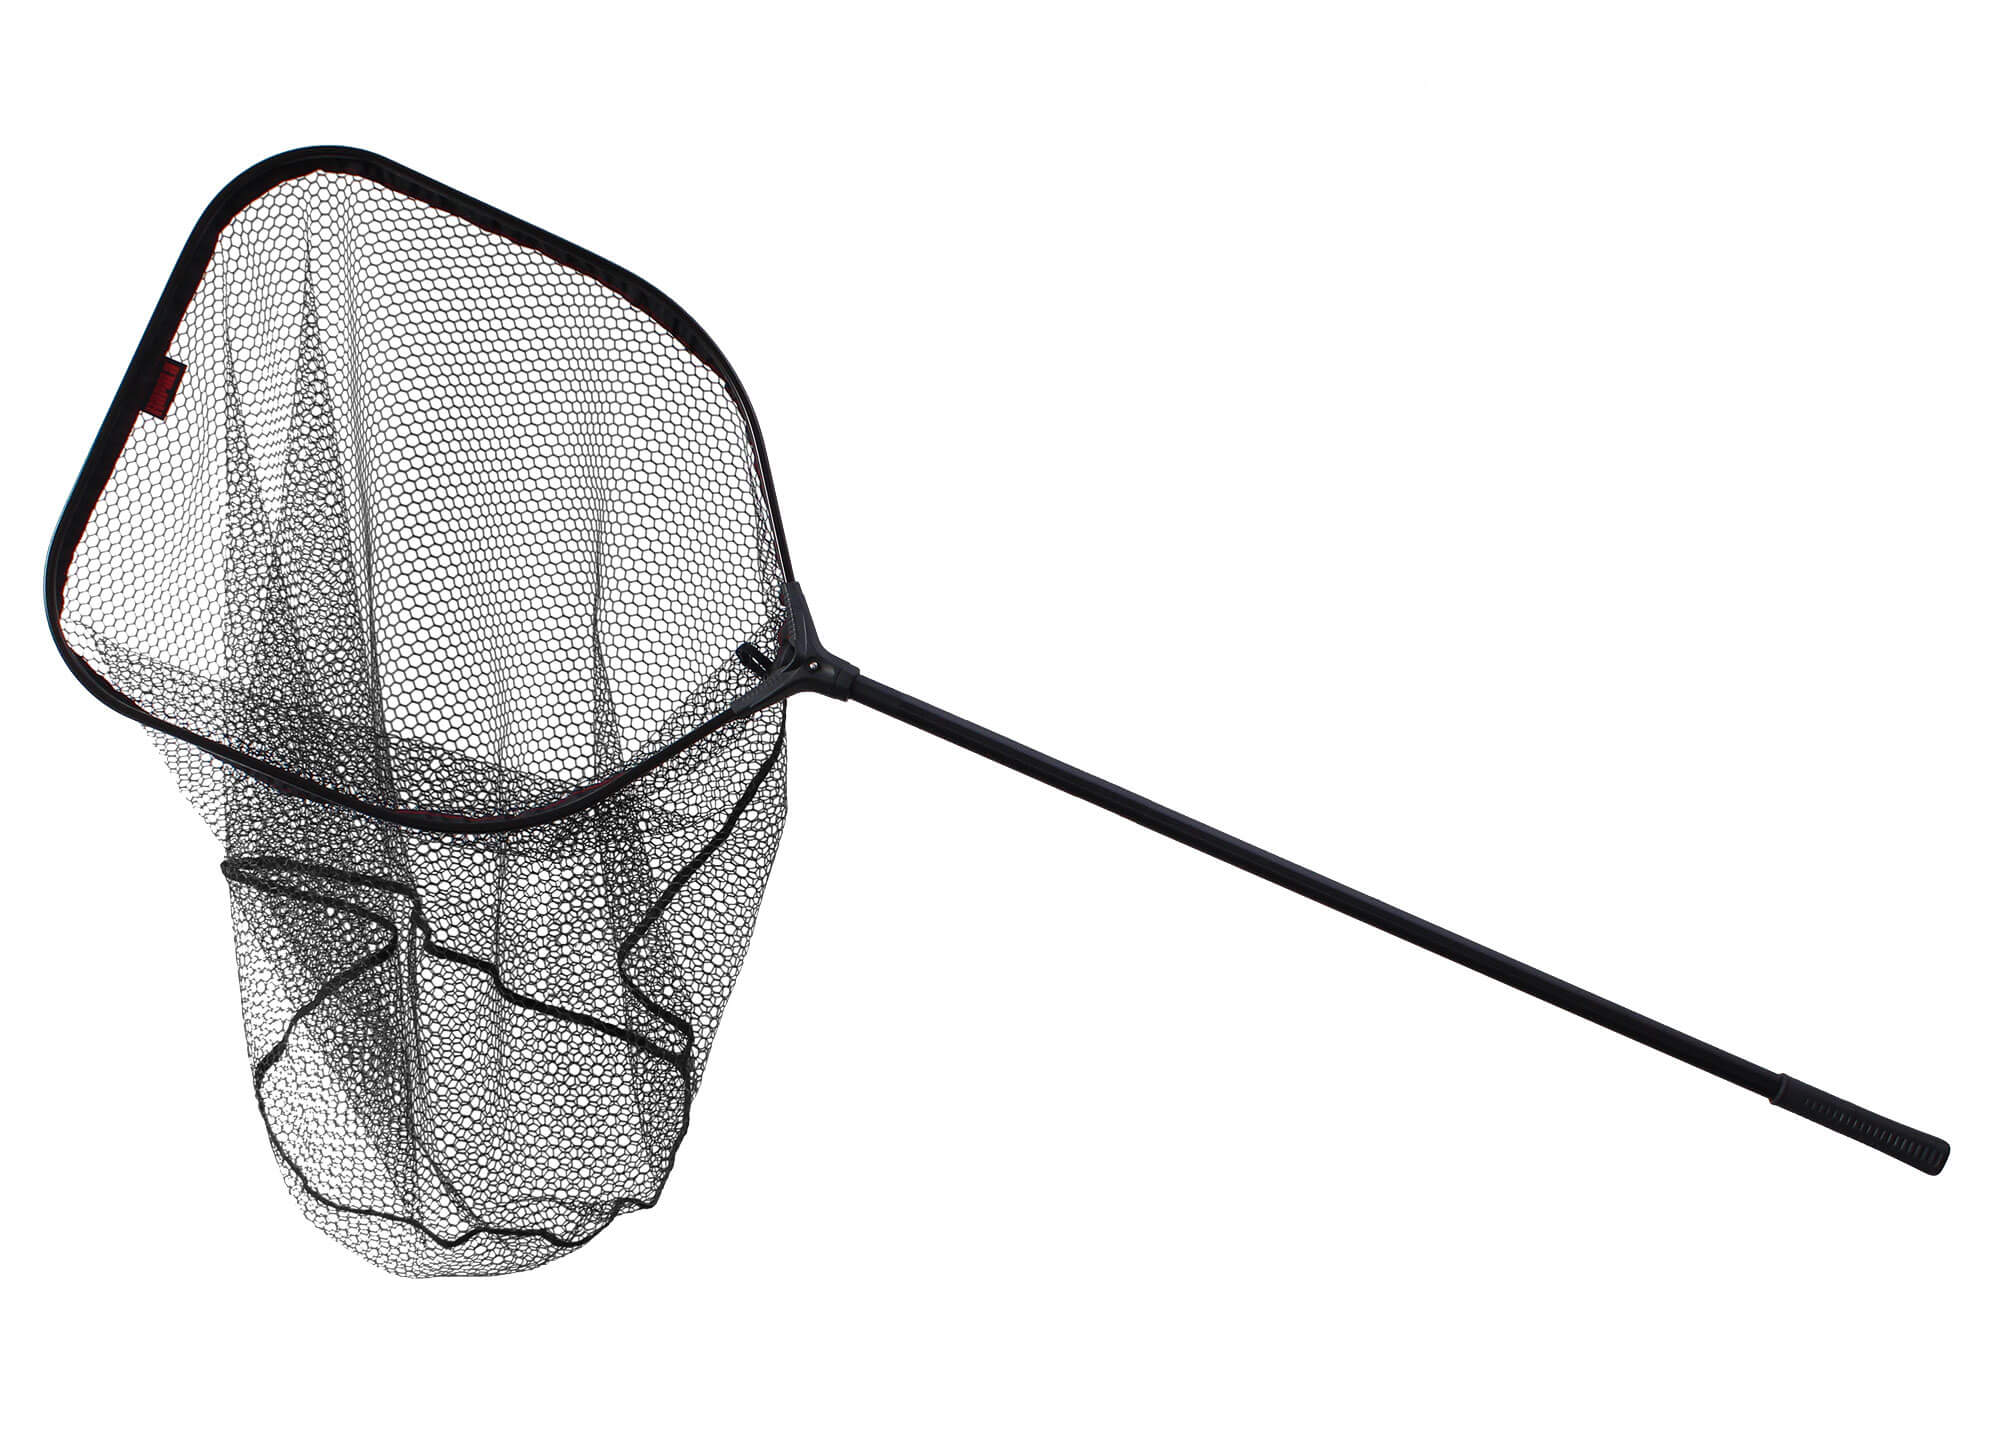 Pro Guide Large Net